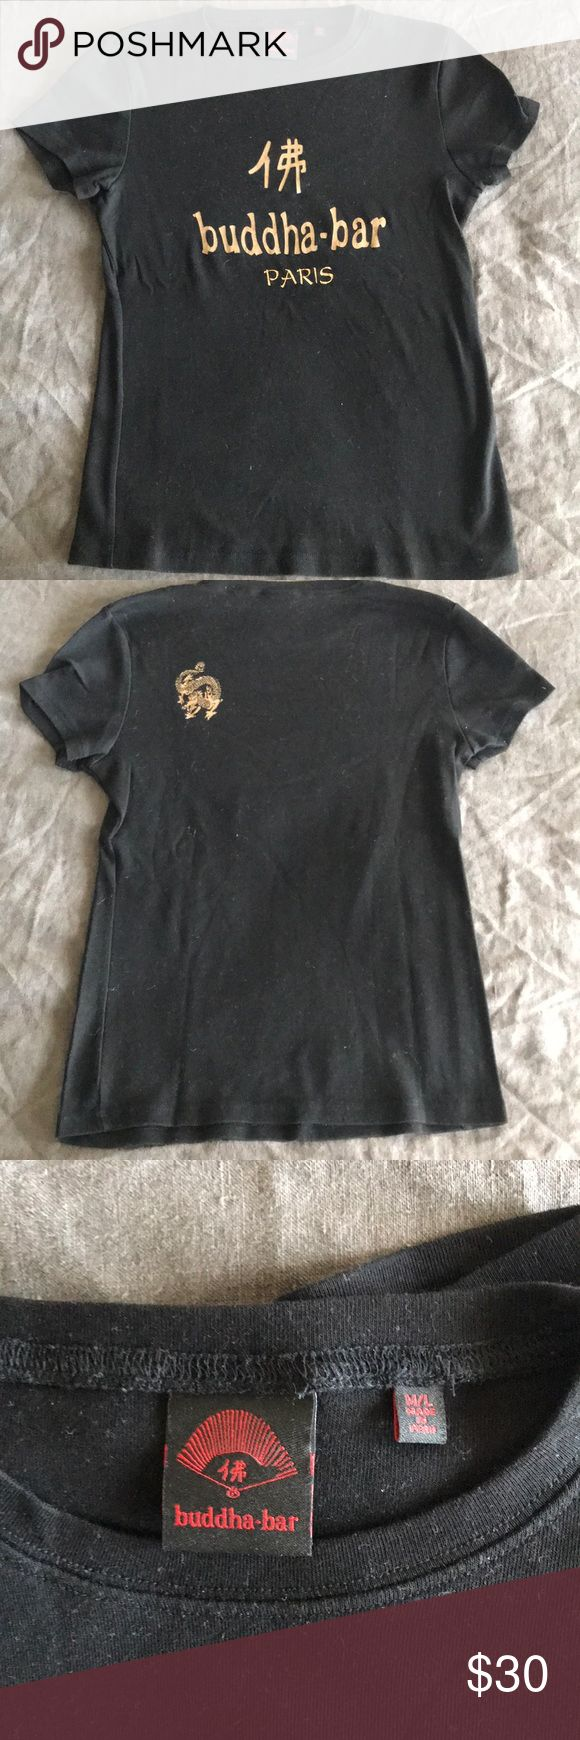 Buddha Bar Paris T-Shirt Black stretchy cotton T-shirt, washed but never worn. Purchased in Paris. Size tag says M-L but fits XS best. Tops Tees - Short Sleeve